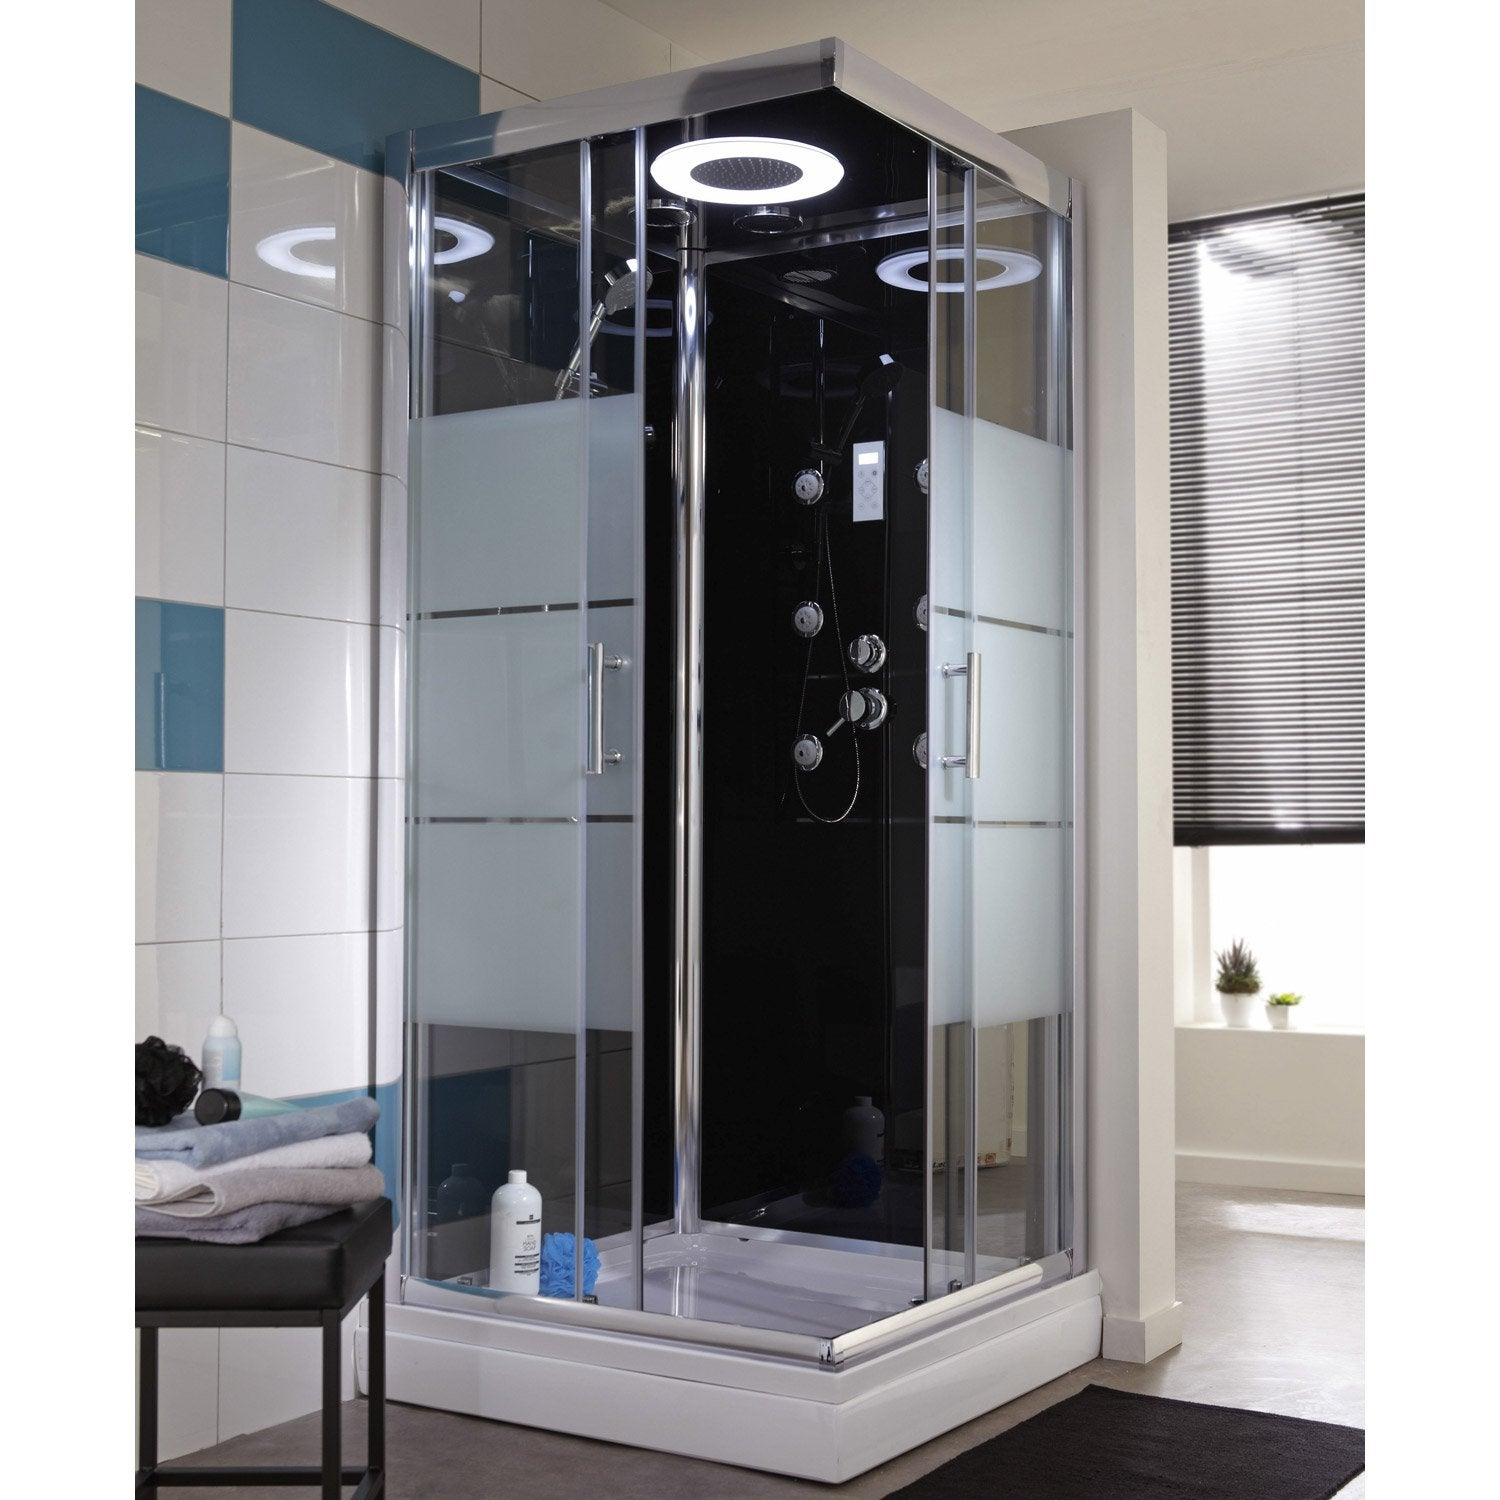 cabine de douche carr 90x90 cm optima2 noire leroy merlin. Black Bedroom Furniture Sets. Home Design Ideas